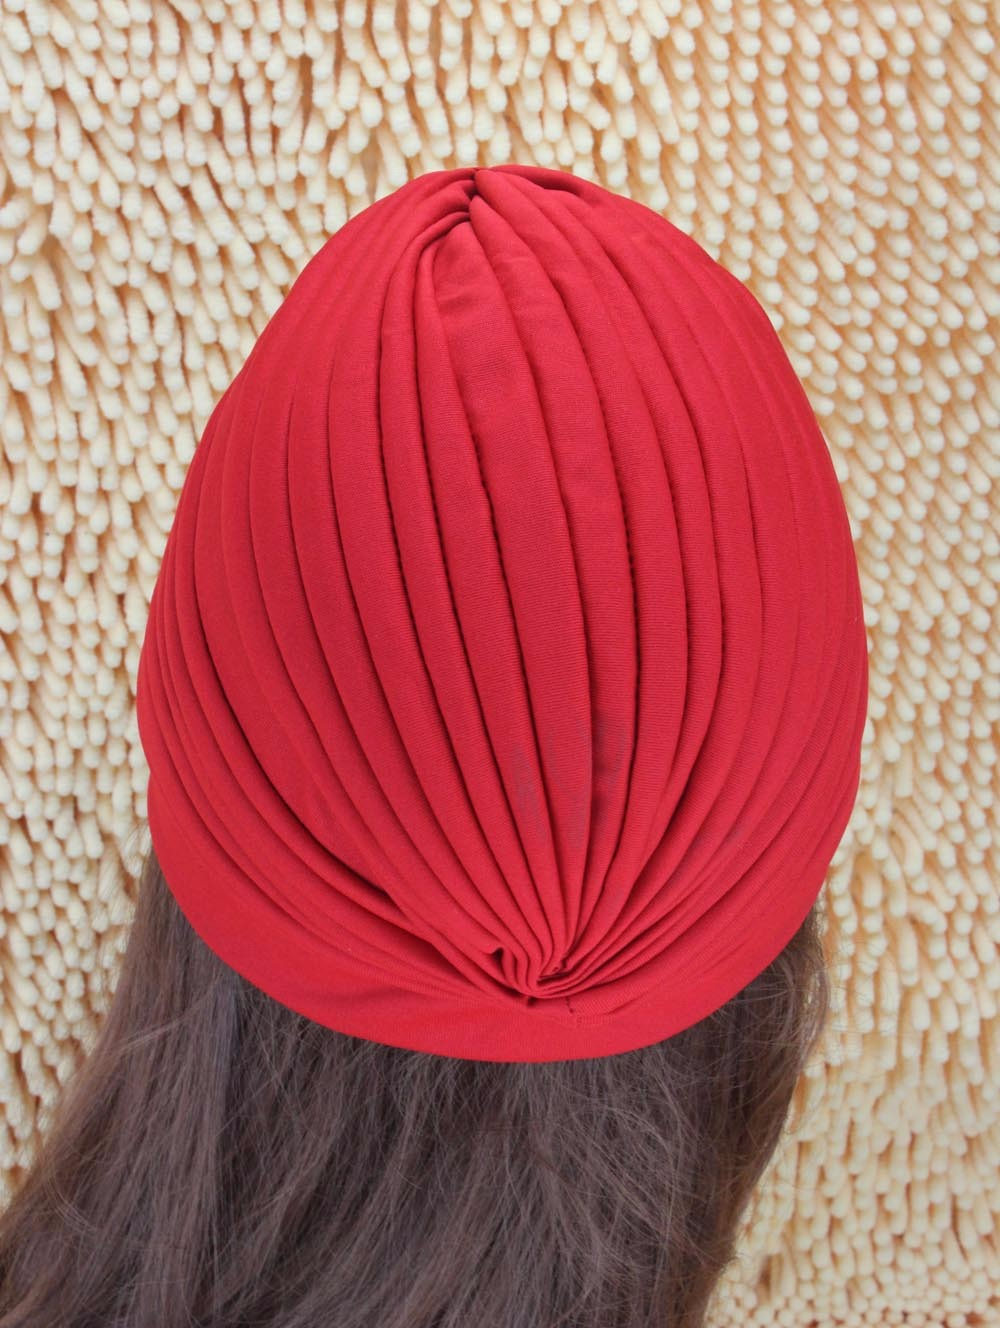 2016 New Fashion Women Turban Hat Bohemia 21 Solid Color Fold Beanies Female Simple Autumn Bonnet Indian Turban Hats For Women (6)